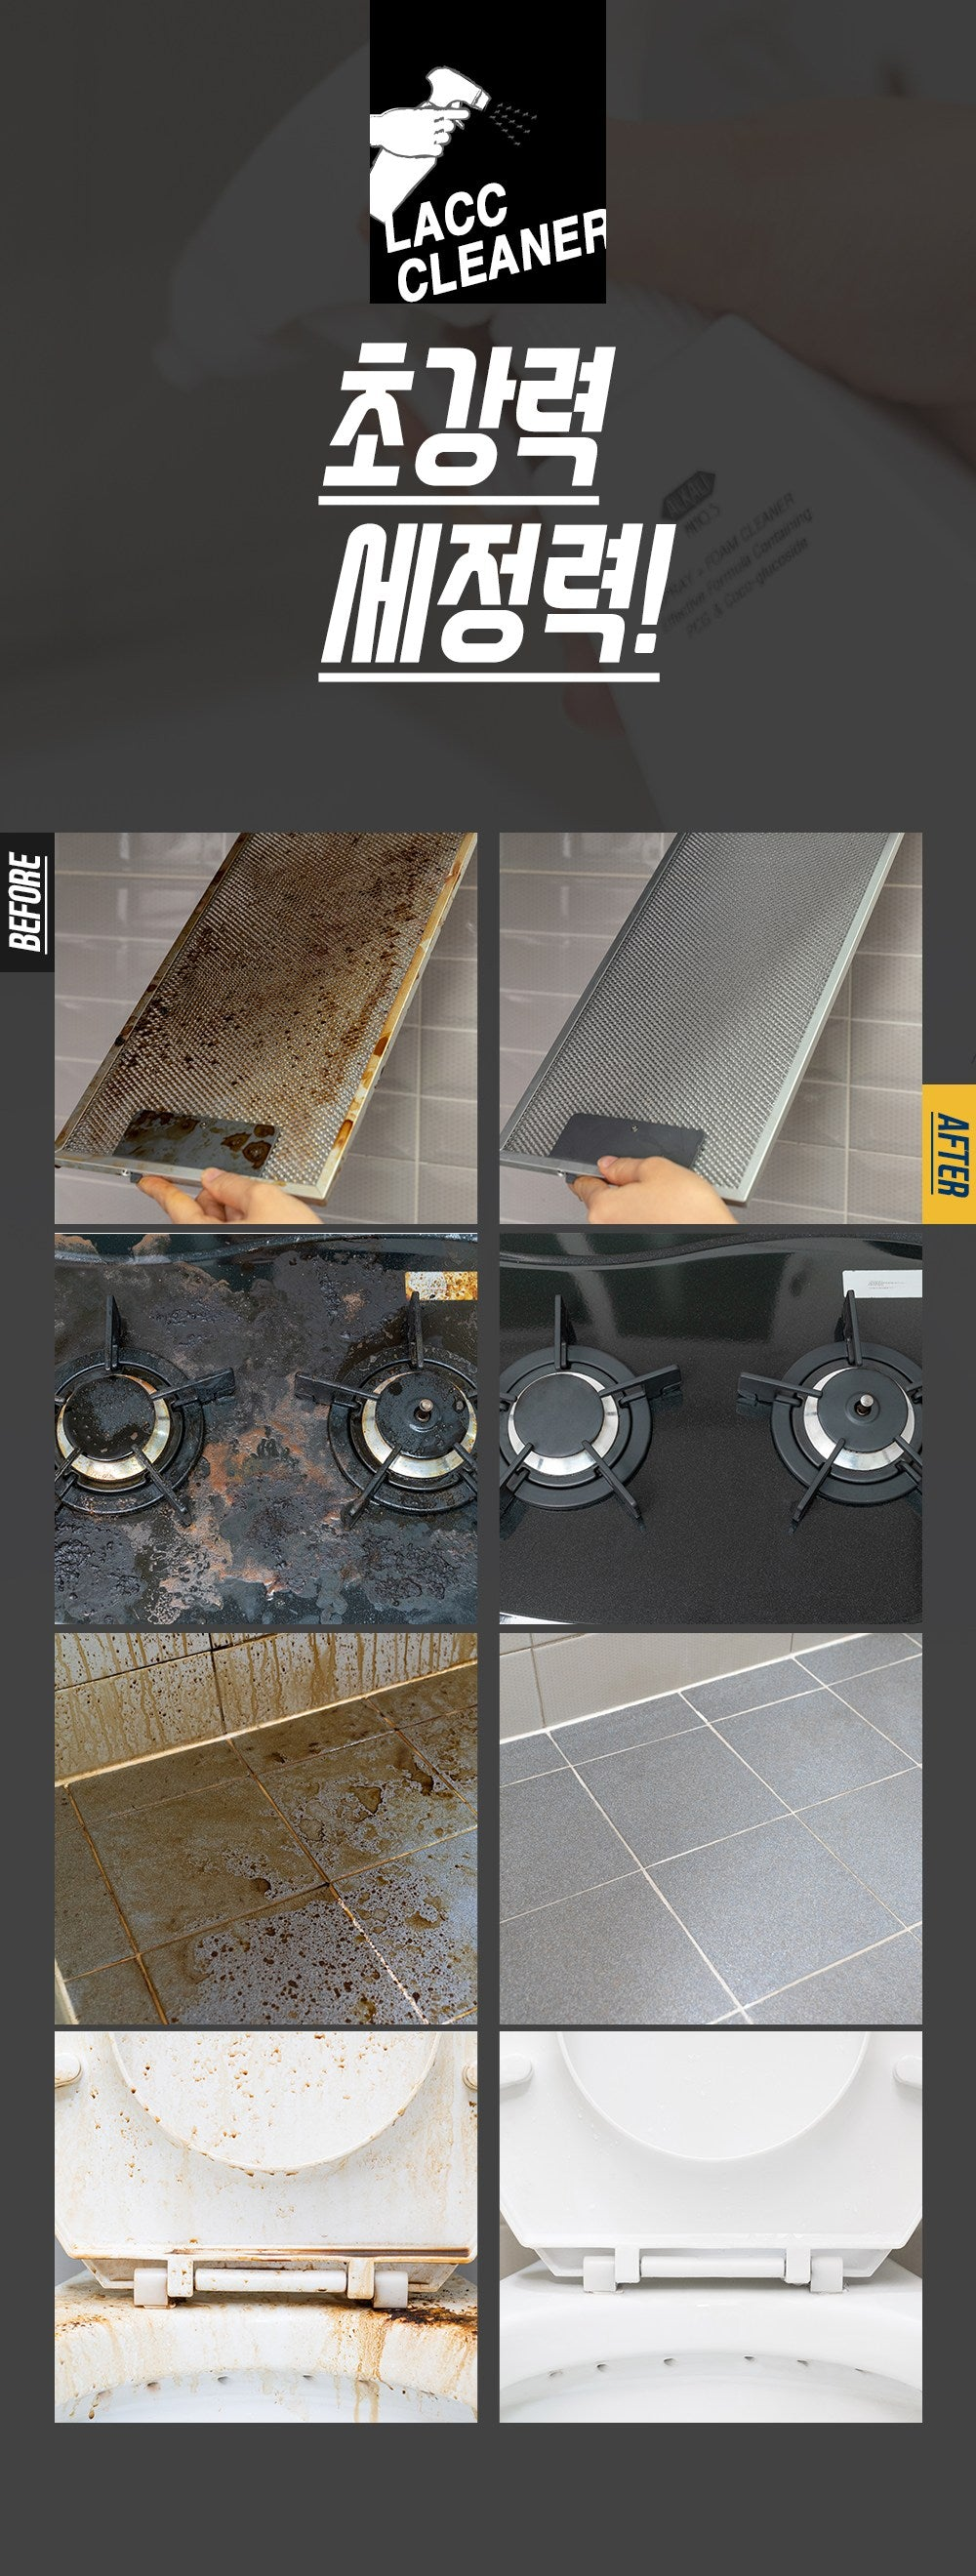 mold stain cleaner Sydney